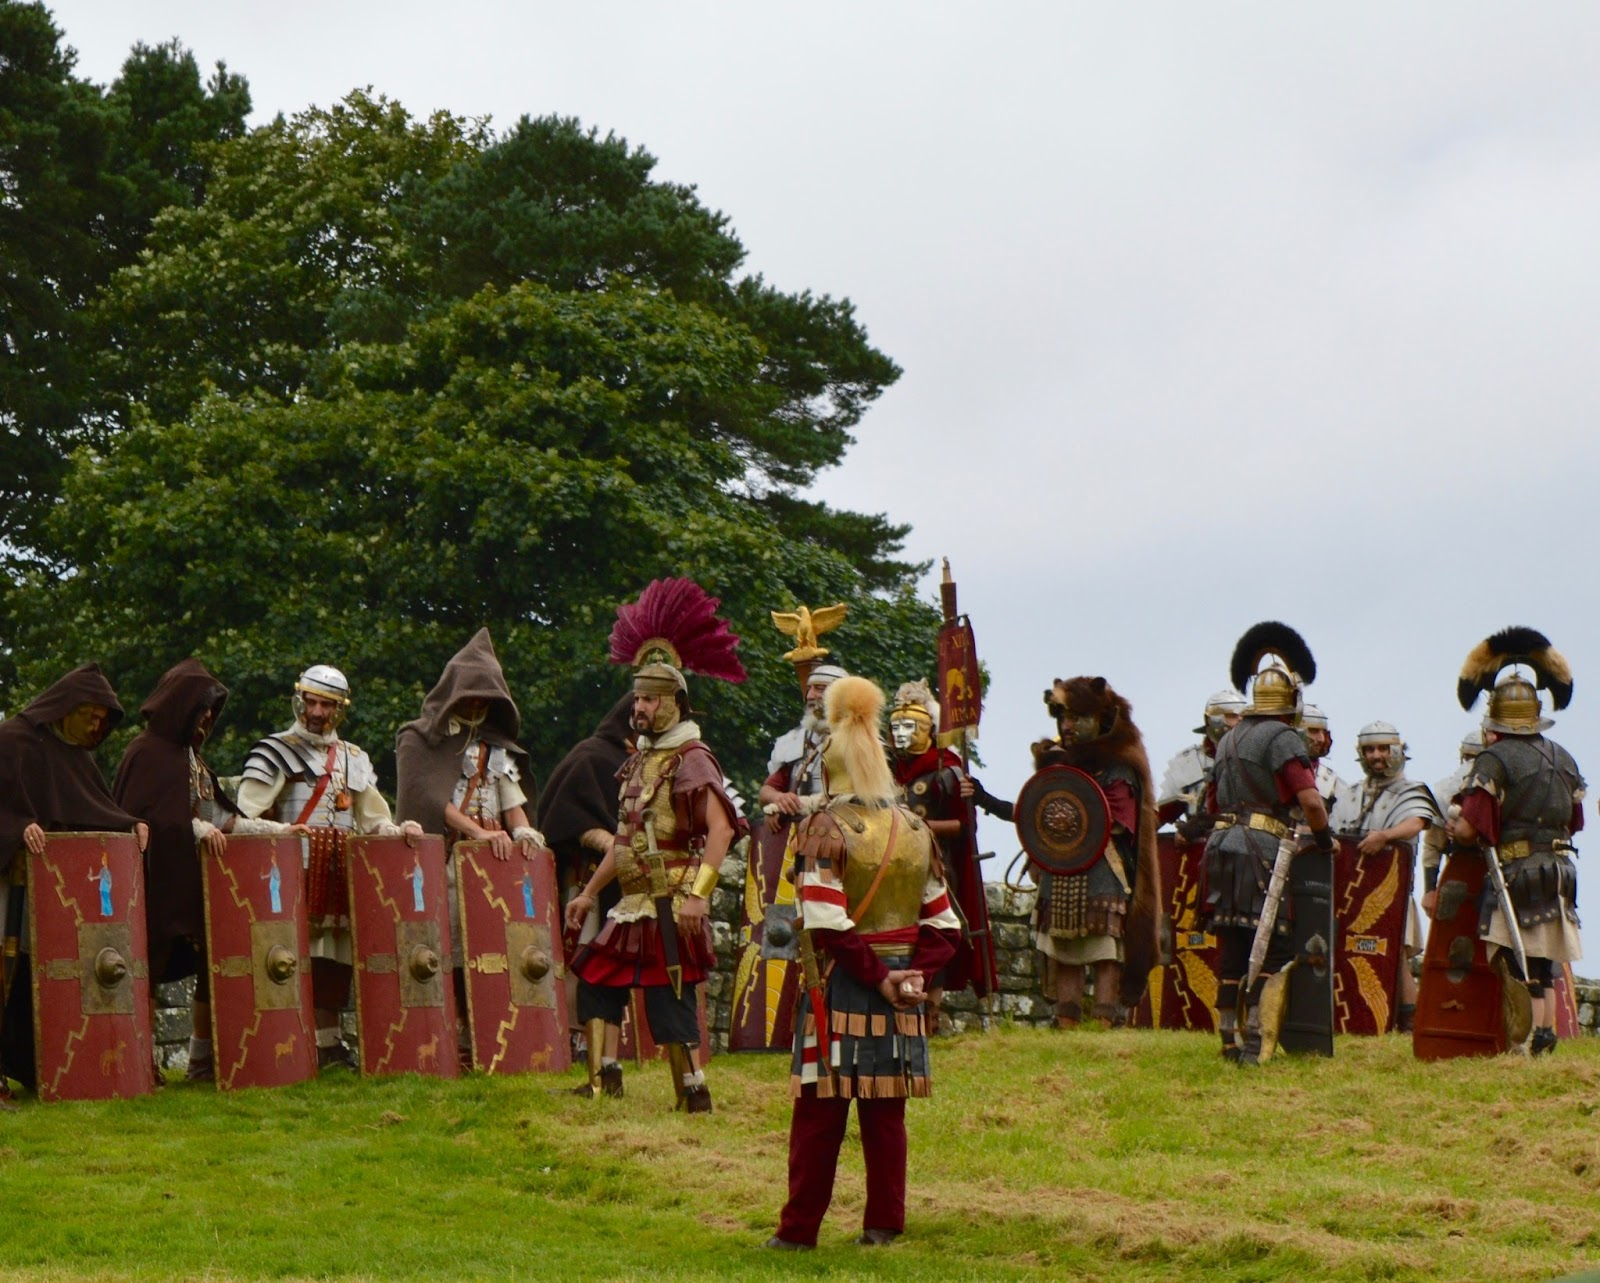 Hadrian's Wall Live 2016 | Birdoswald Roman Fort & Housesteads - A Review